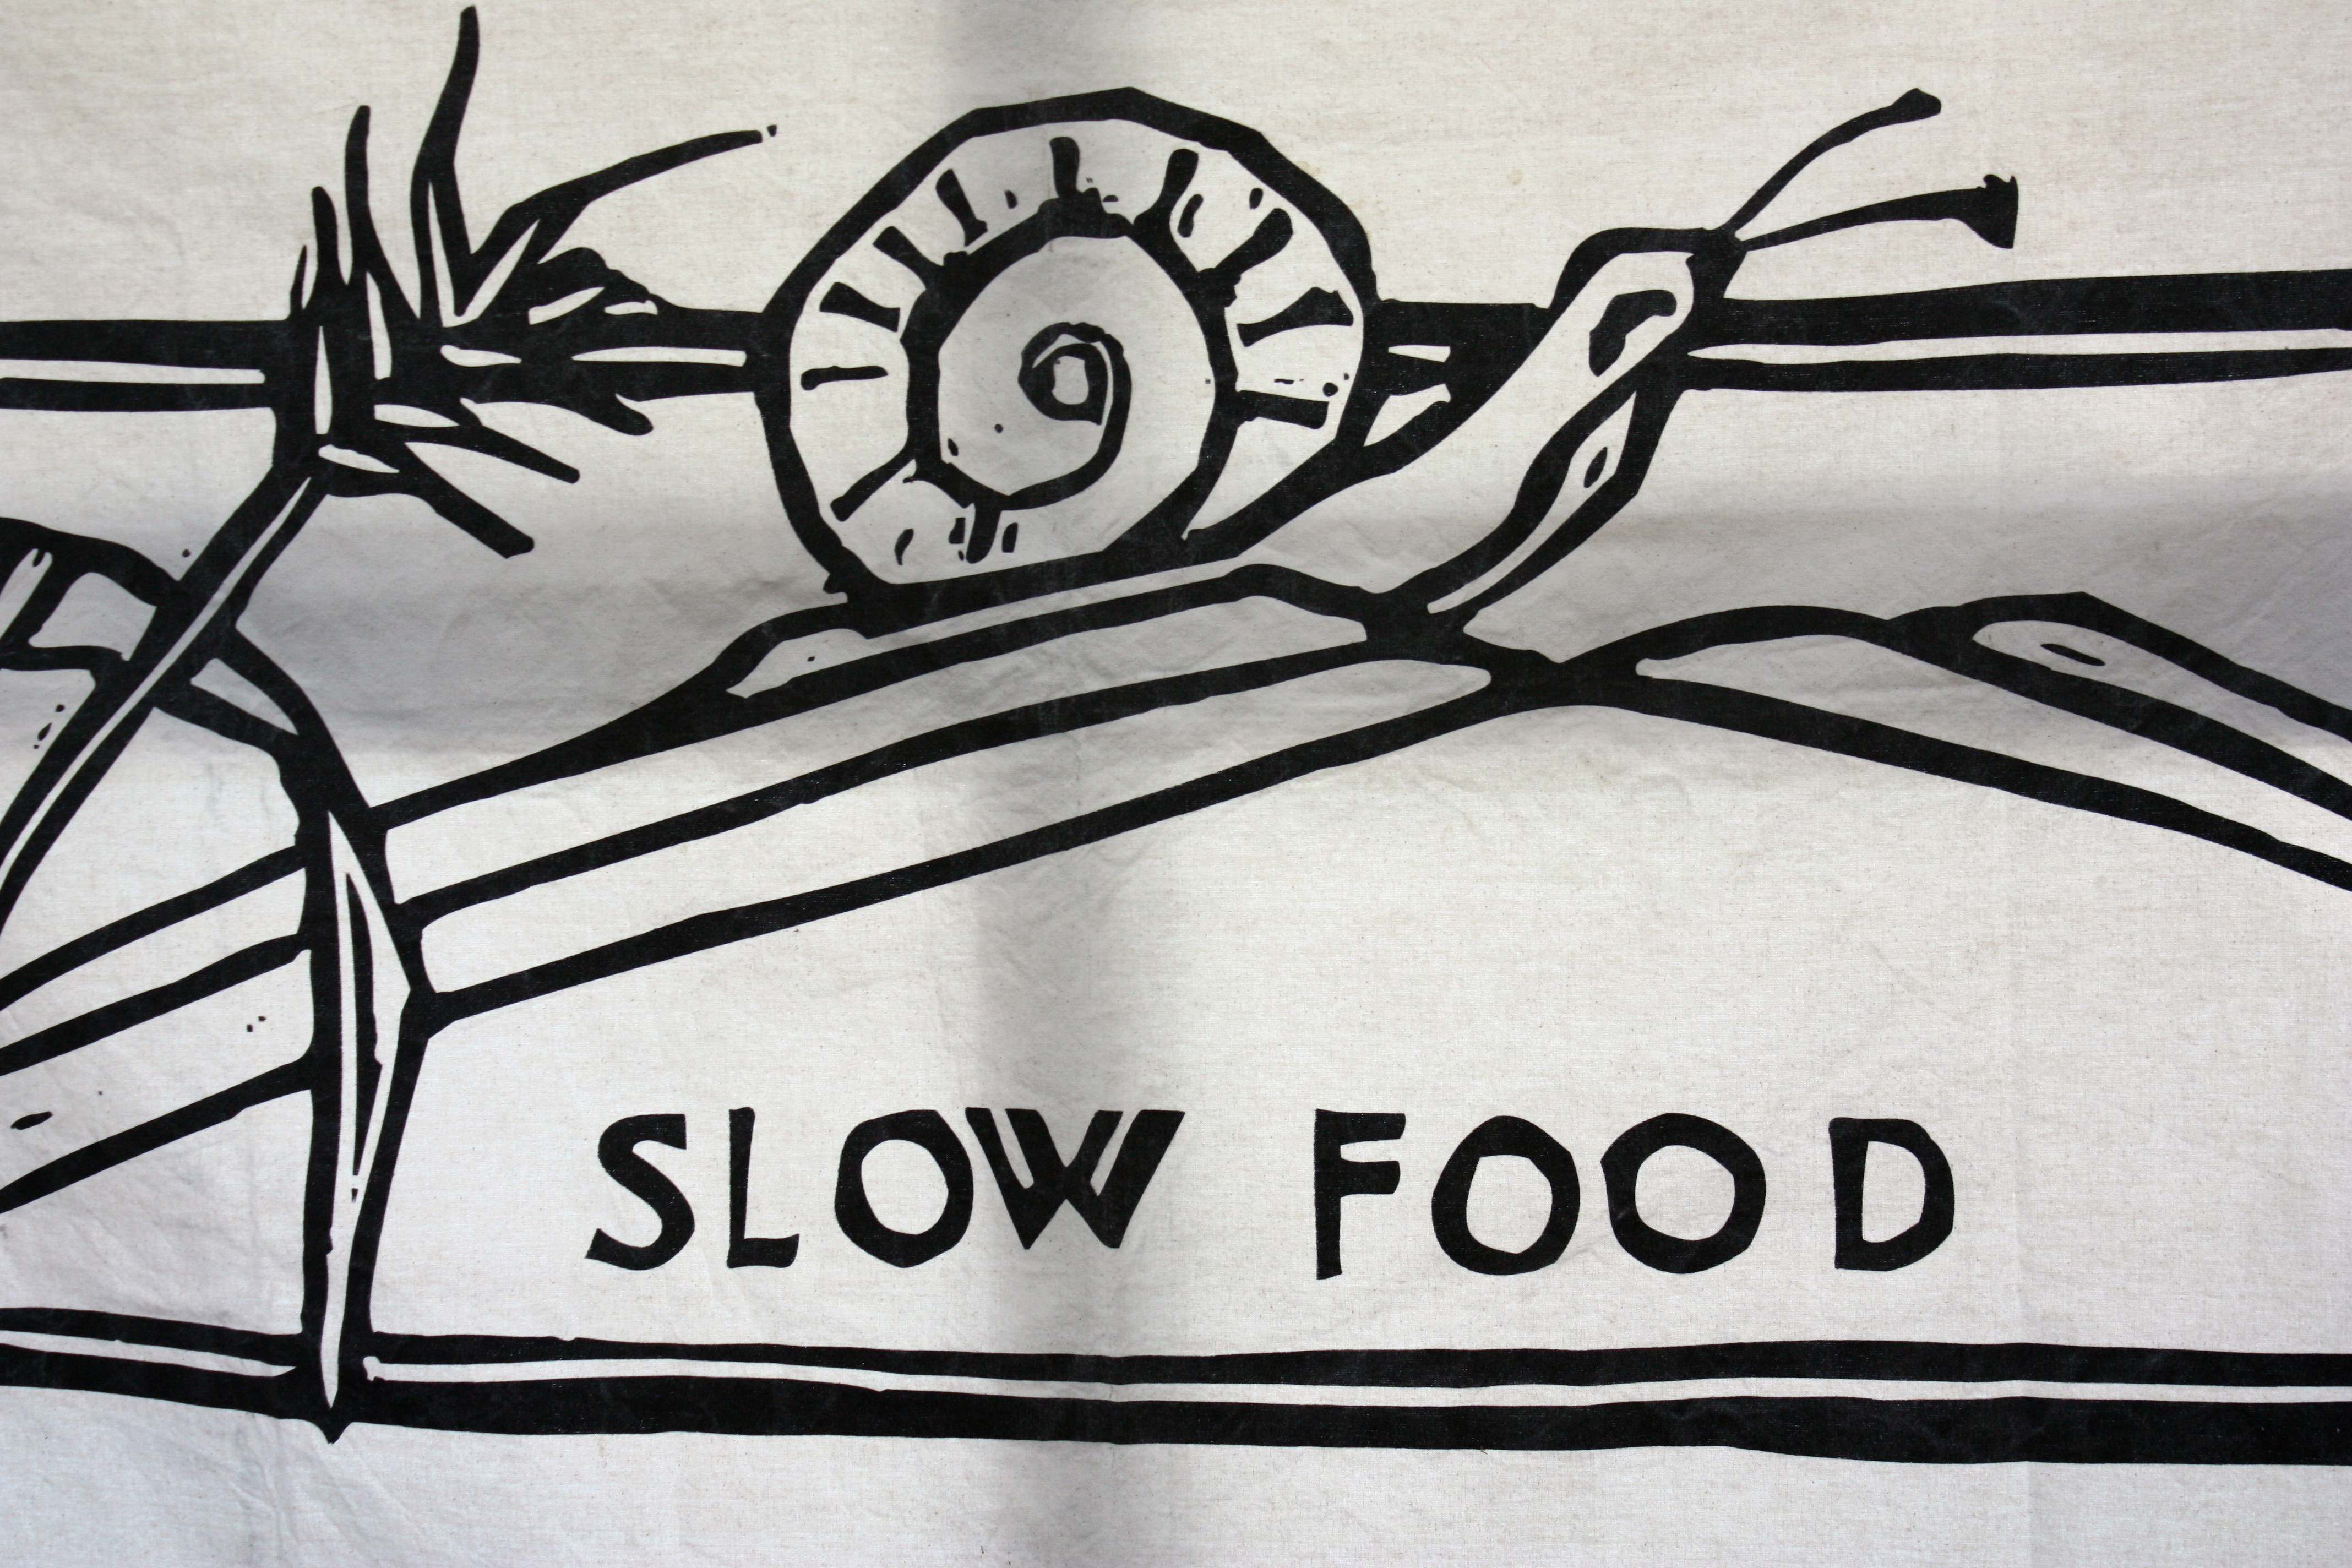 the slow food movement essay Free essay / term paper: slow food movement as winter draws in, holiday memories of strolling around continental street markets, cooking fresh, locally grown produce and lingering over delicious meals begin to fade, to be replaced by the unromantic reality of rushed shopping, cooking and eating.